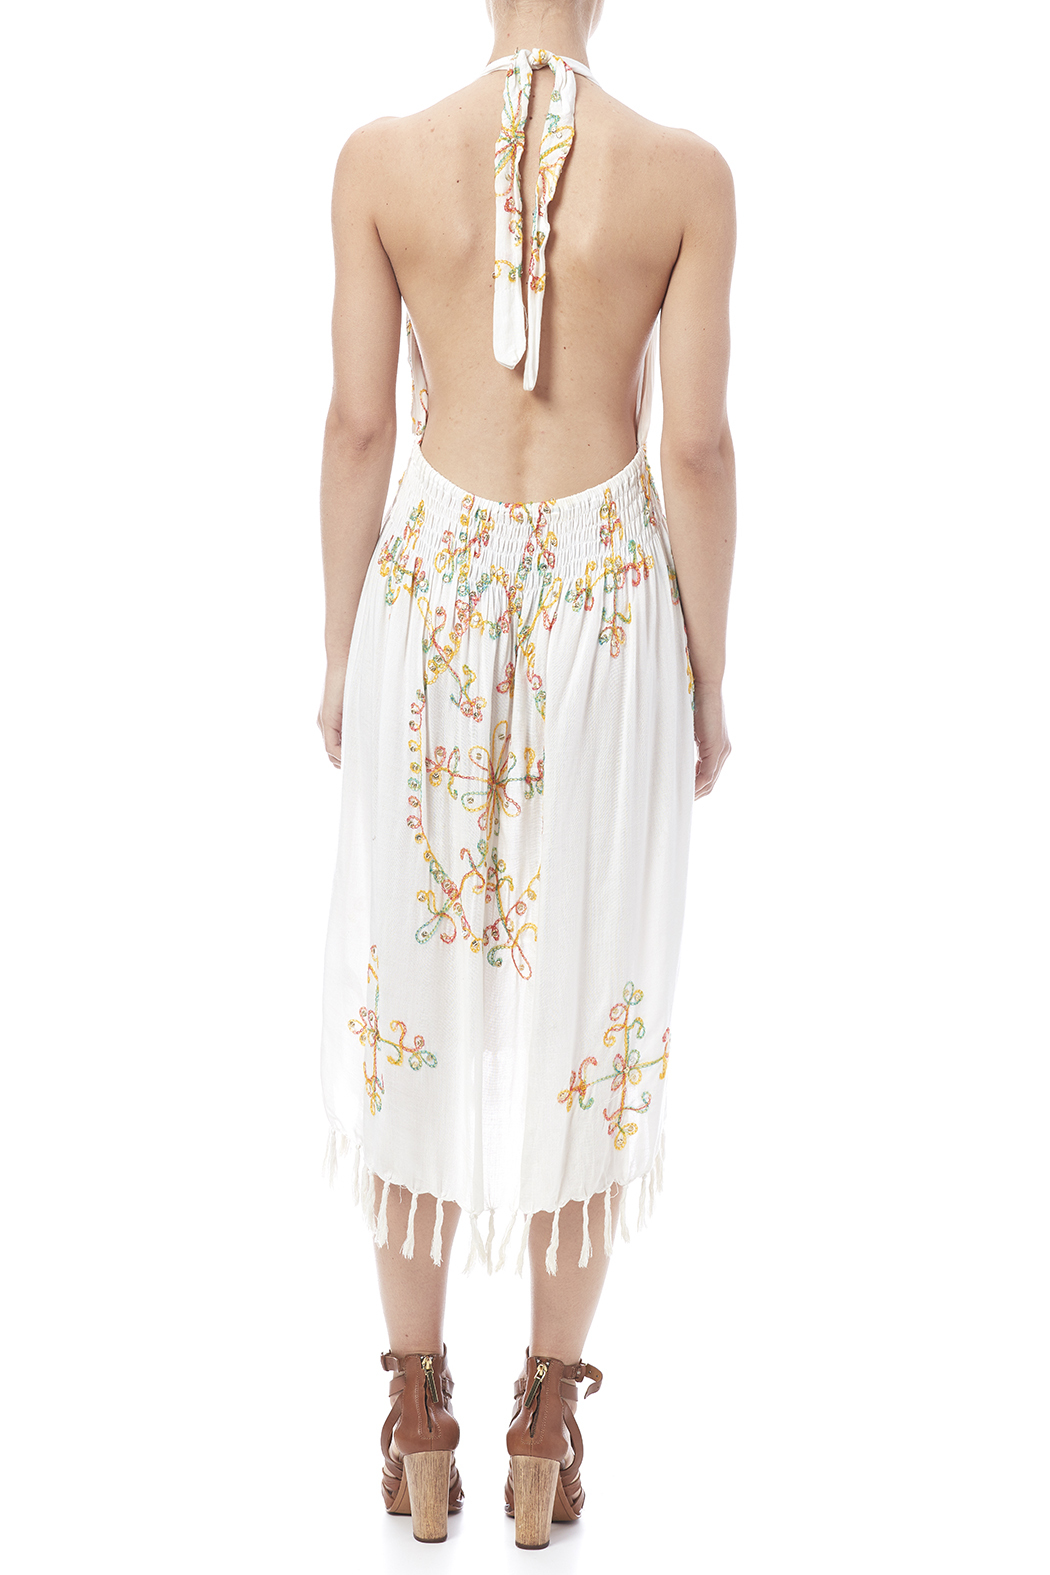 tu-anh boutique Halter Embroidery Dress - Back Cropped Image